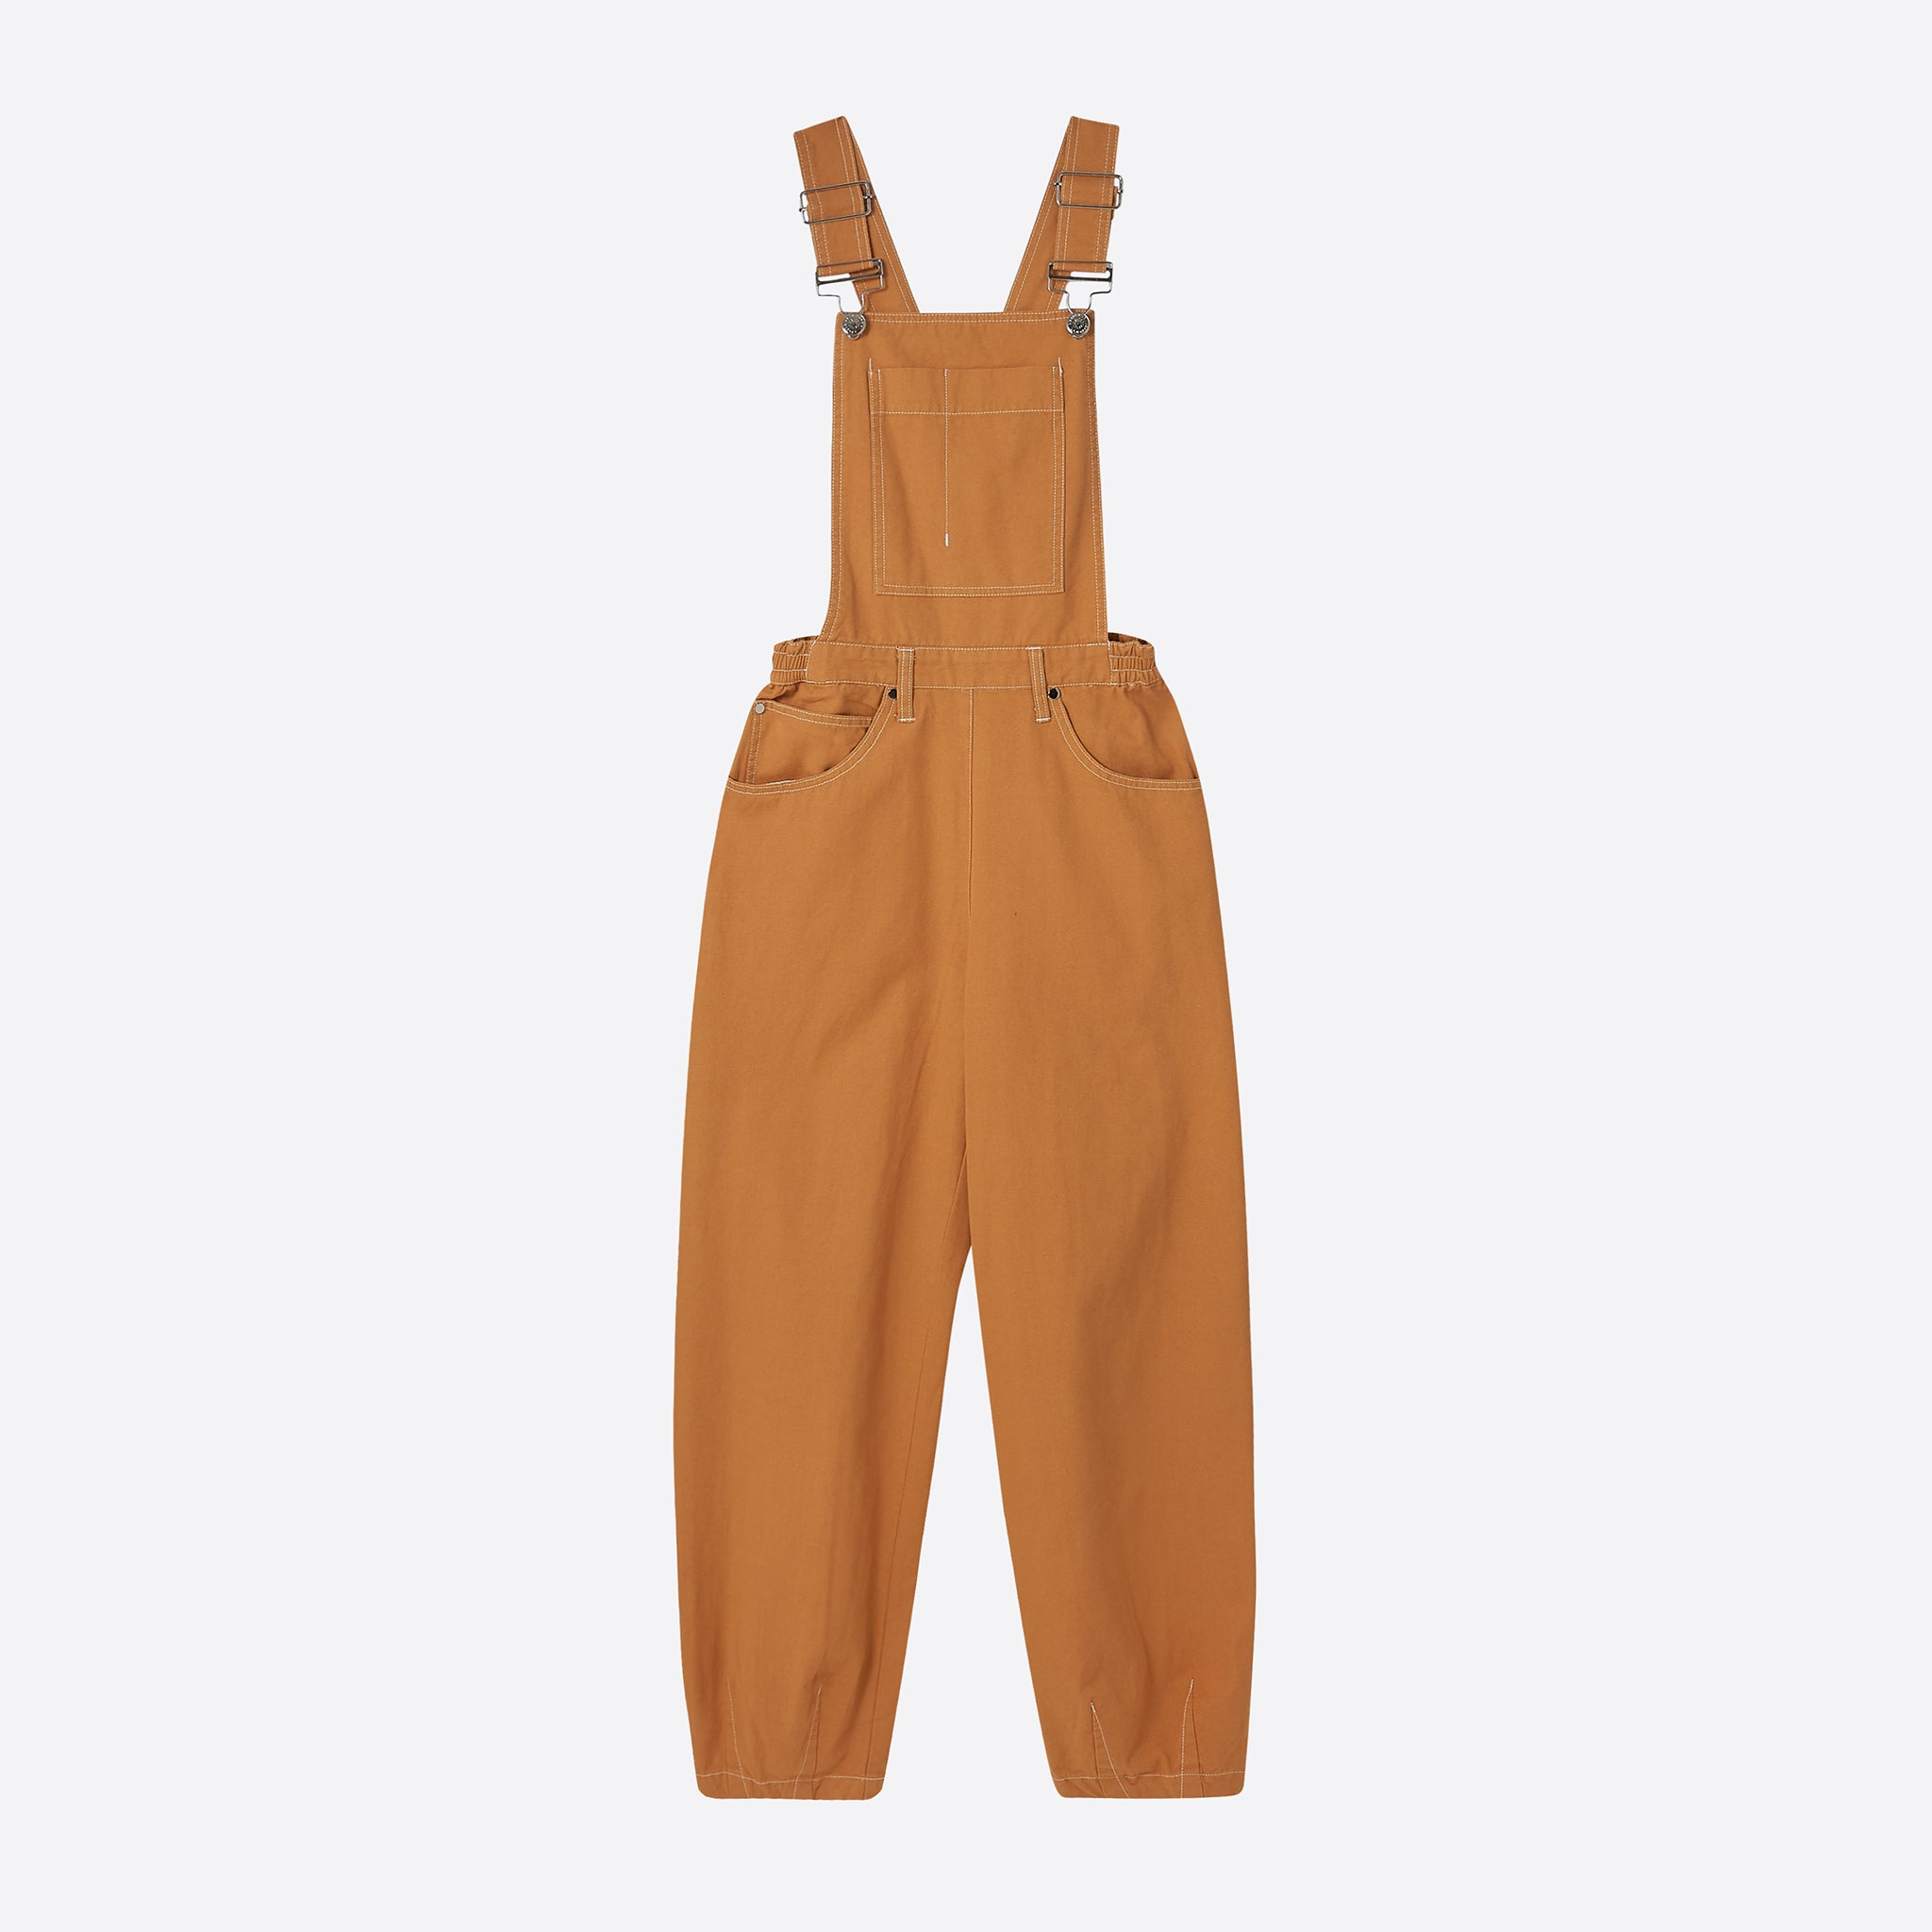 LF Markey Fat Boys Dungarees in Camel